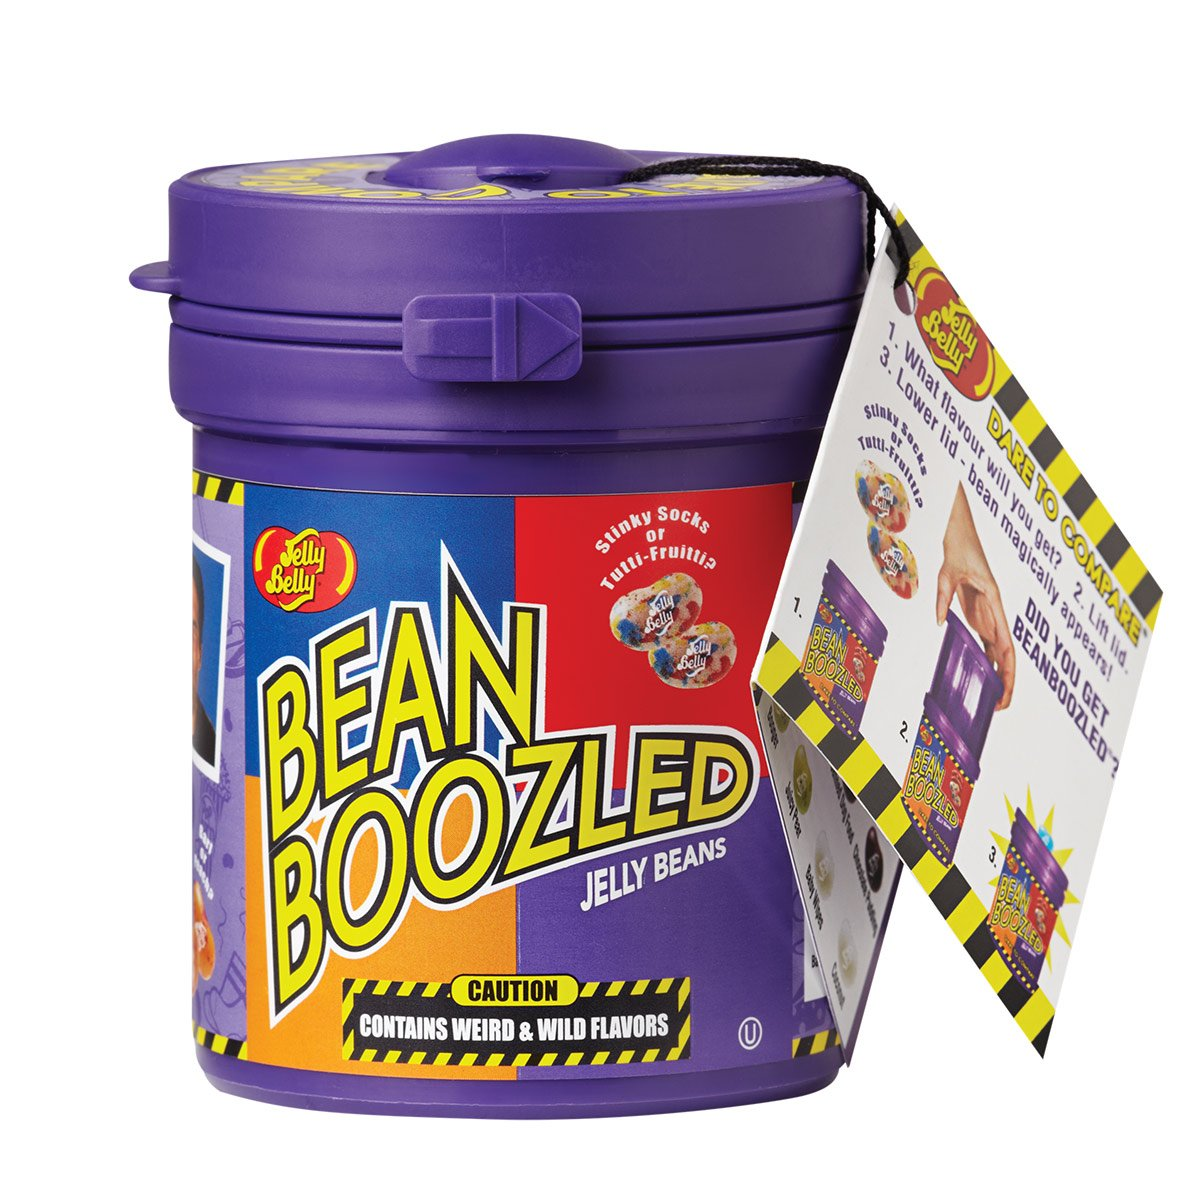 Jelly Belly BeanBoozled Mystery Bean Jelly Bean Dispenser, 4th Edition, Assorted Flavors, 3.5-oz by Jelly Belly (Image #1)